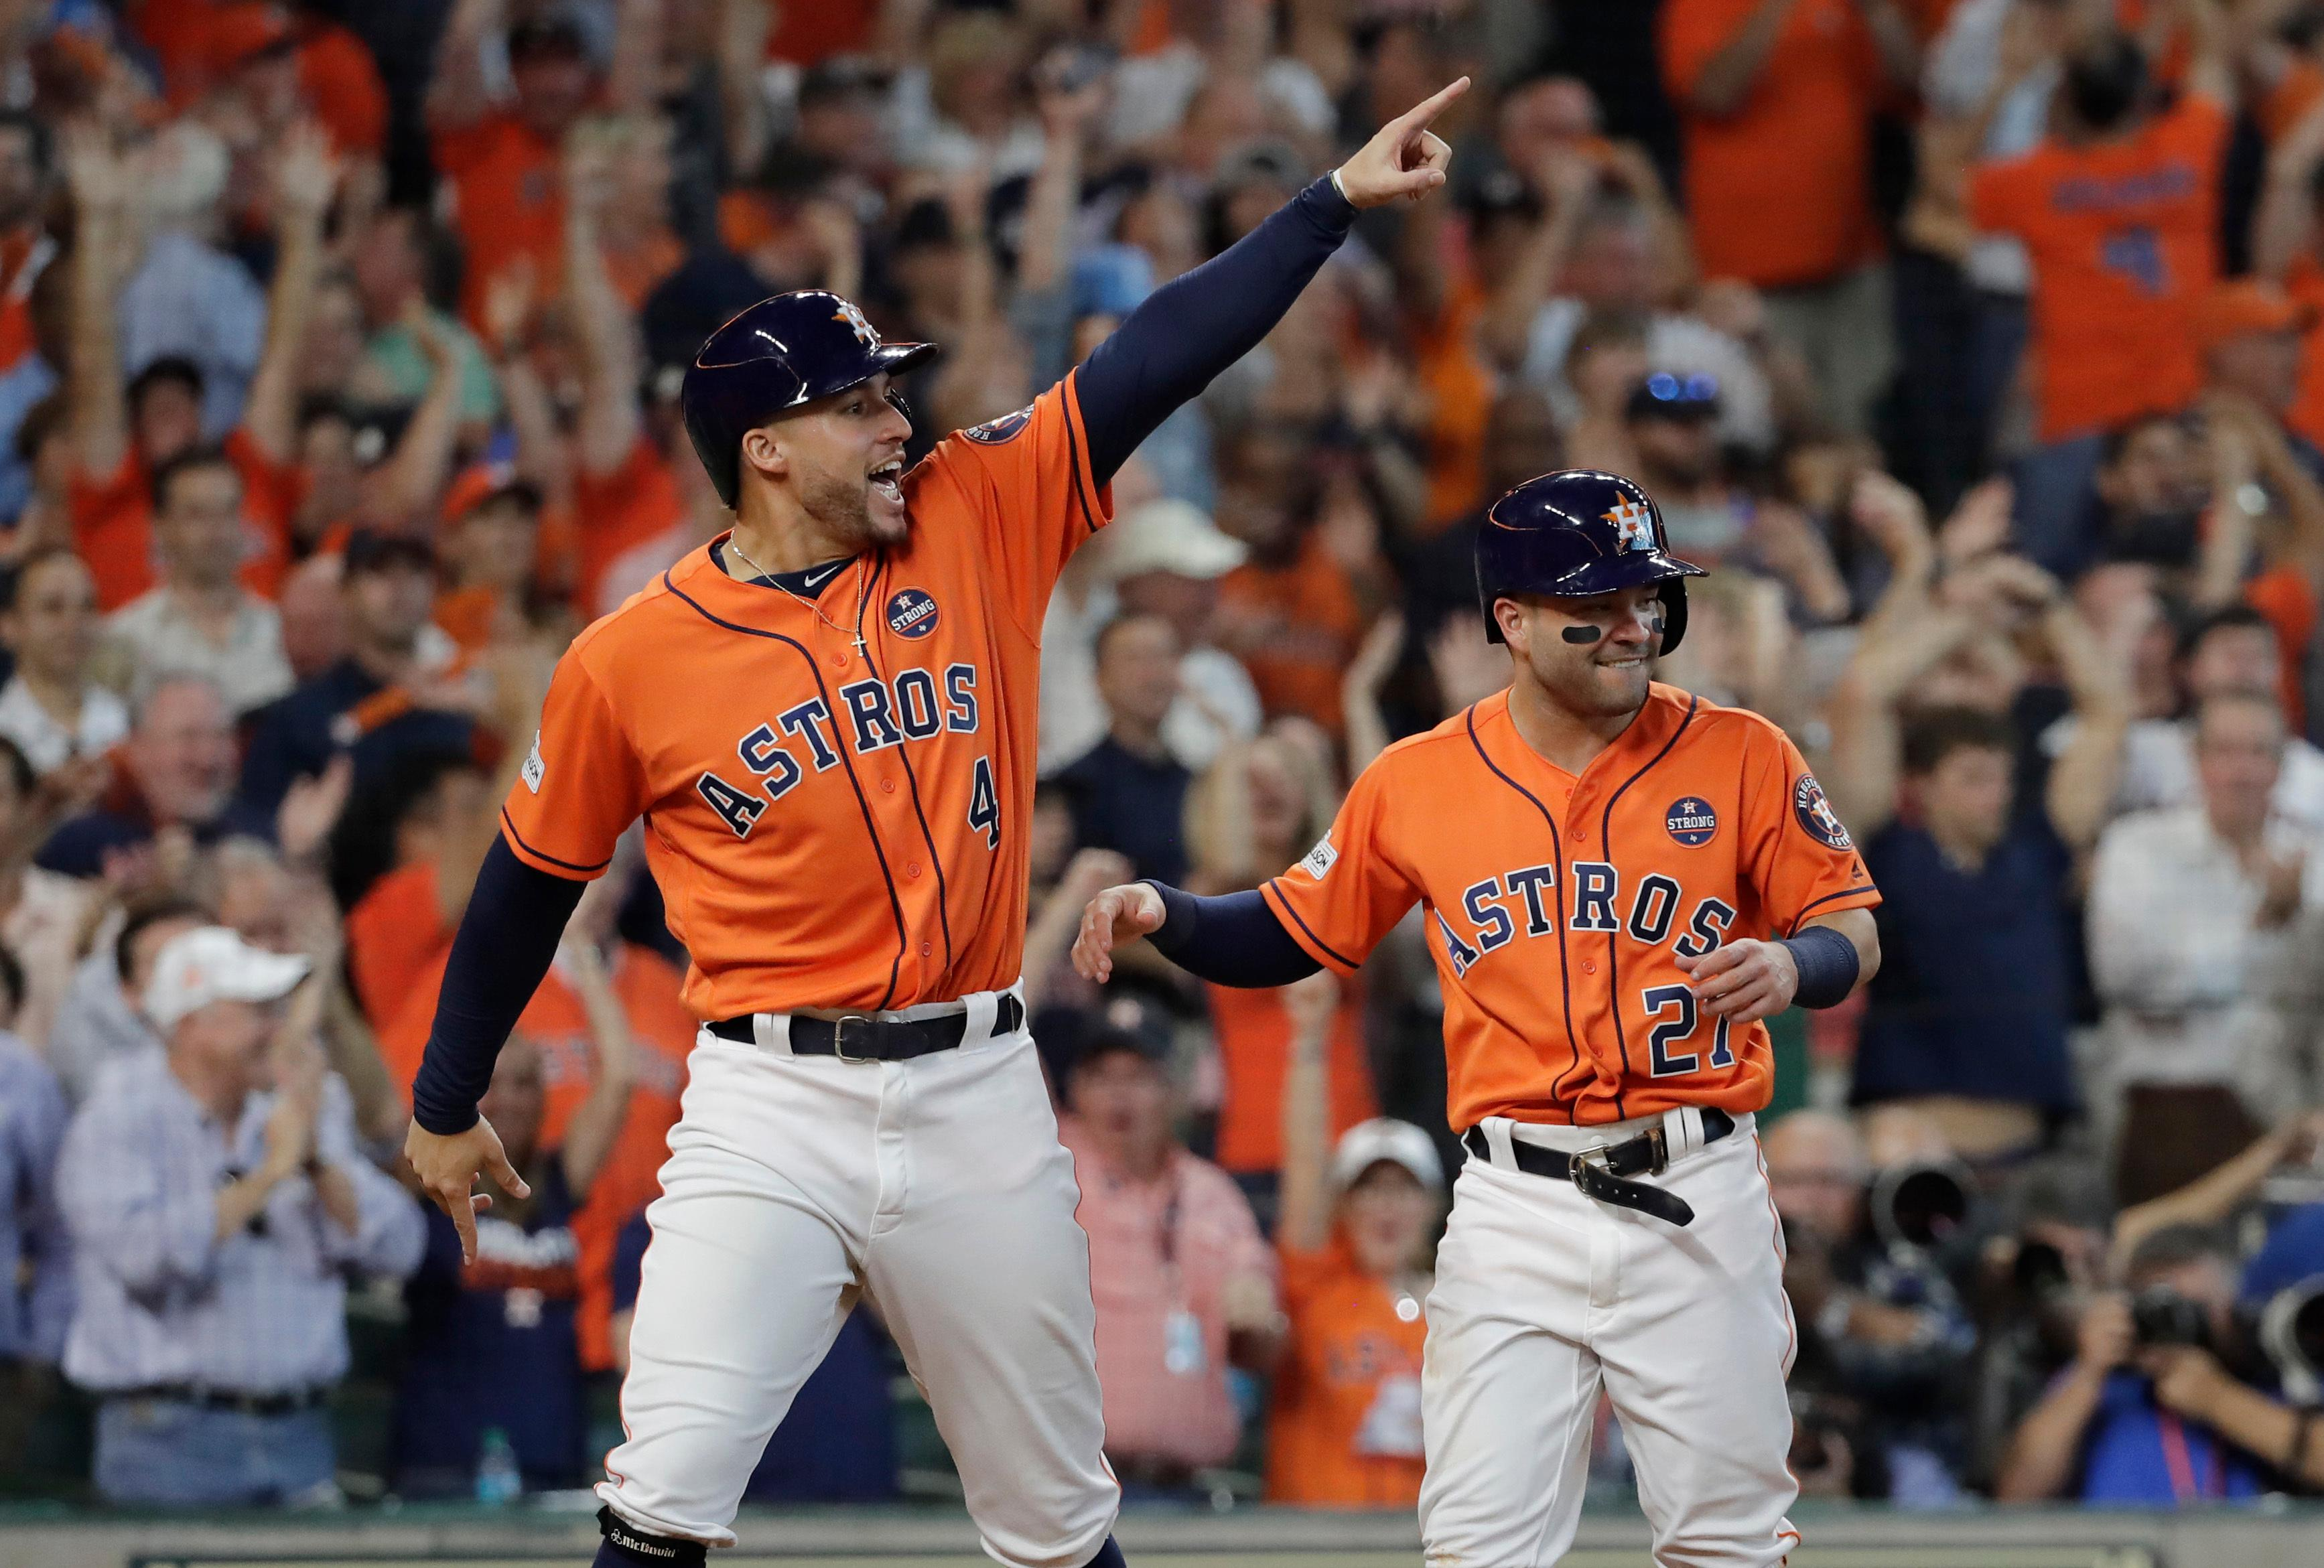 Houston Astros' George Springer (4) and Jose Altuve (27) celebrate after they scored on teammate Carlos Correa's double in Game 2 of baseball's American League Division Series against the Boston Red Sox, Friday, Oct. 6, 2017, in Houston. (AP Photo/David J. Phillip)